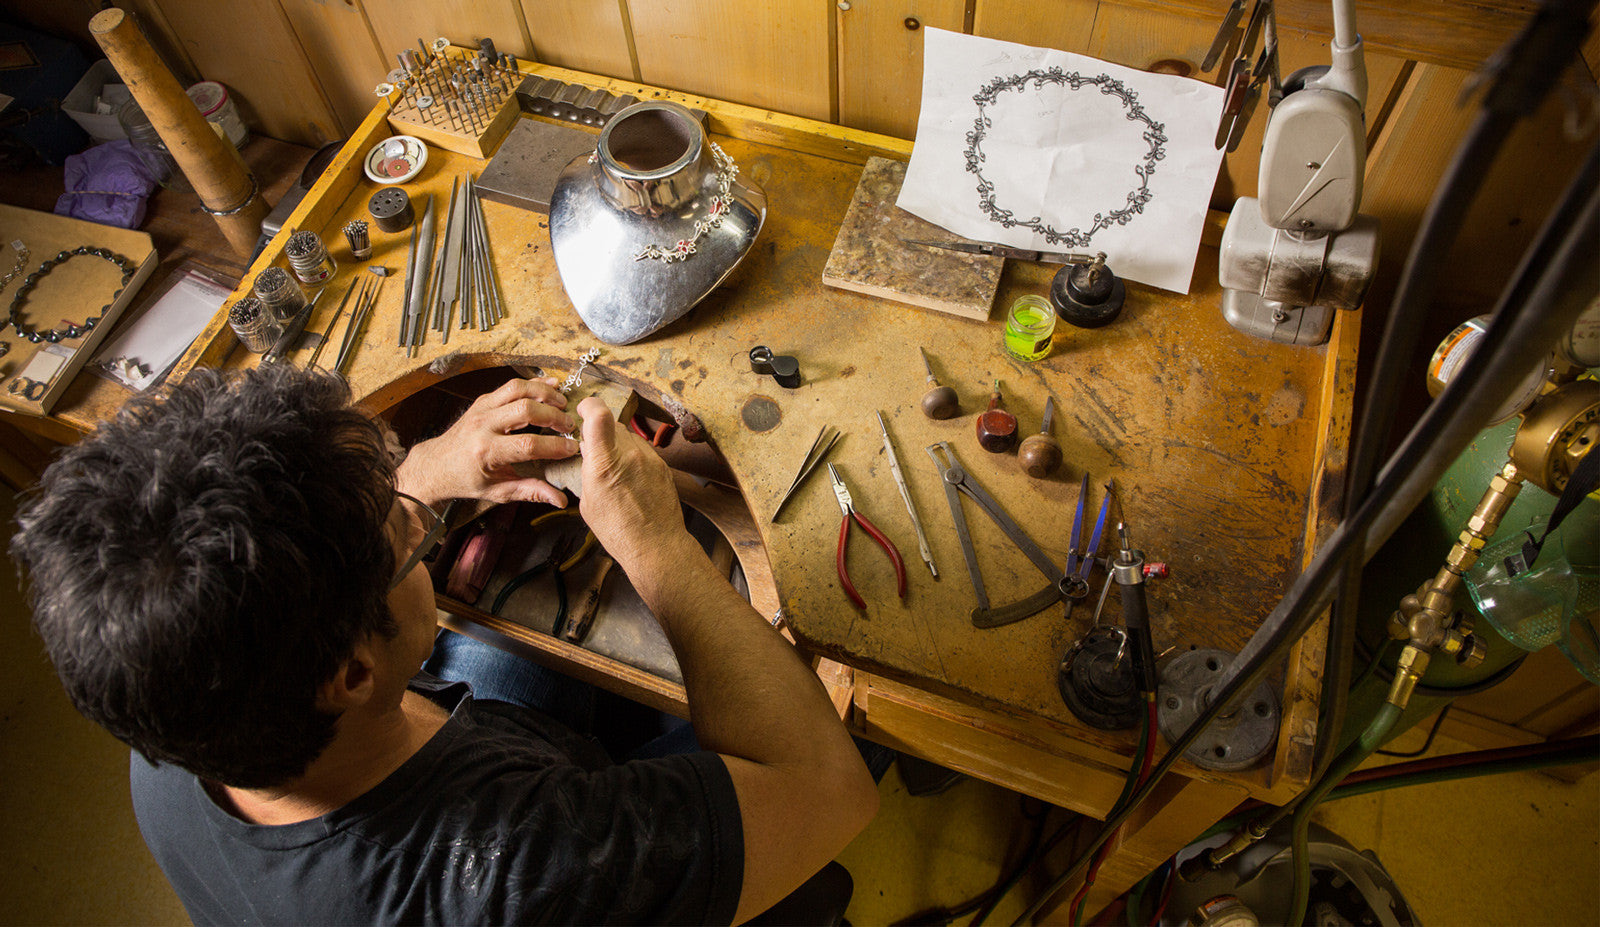 Diana Vincent Process showing jeweler at workbench